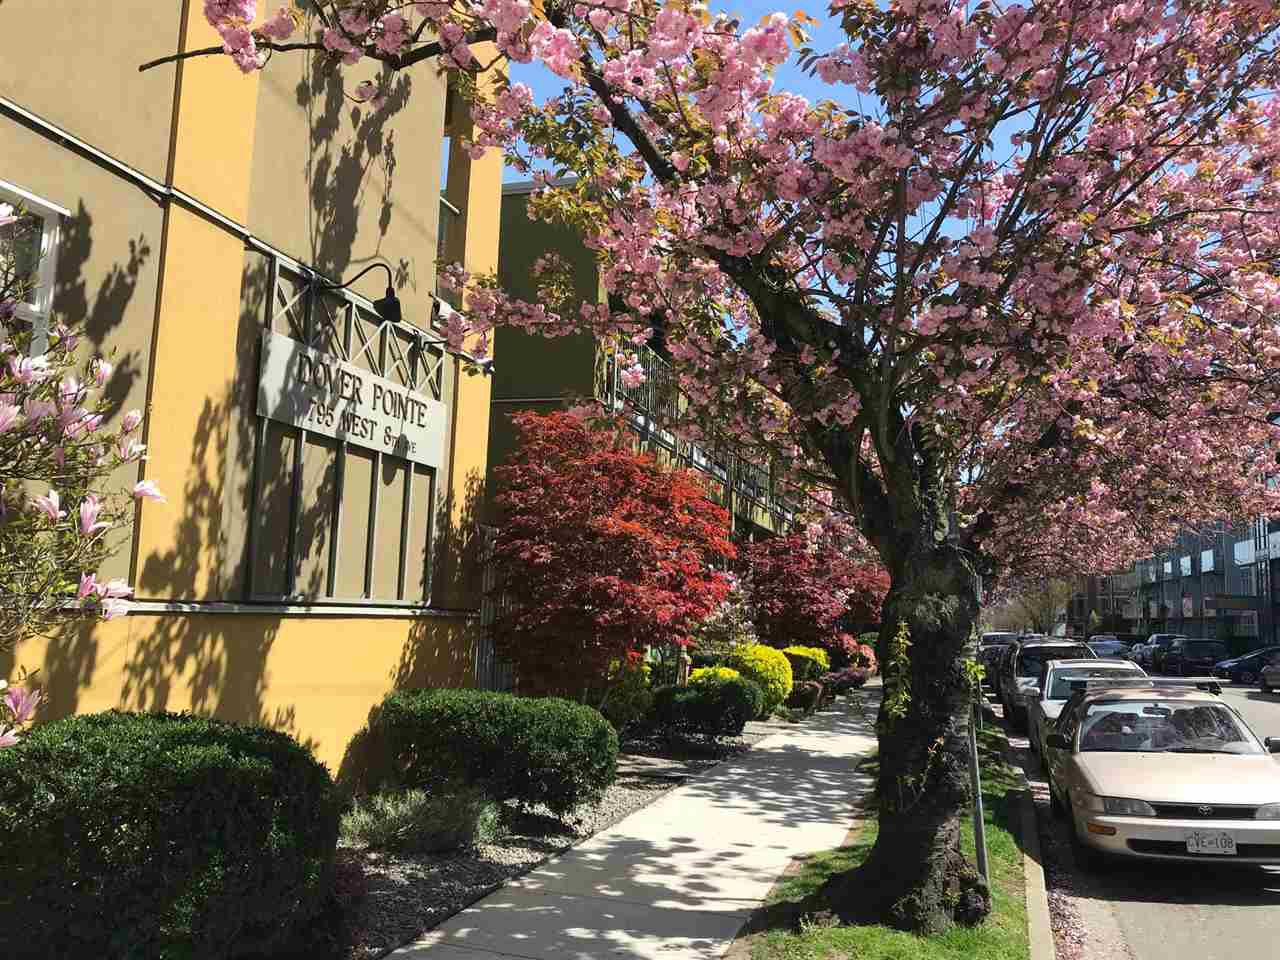 """Main Photo: 30 795 W 8TH Avenue in Vancouver: Fairview VW Townhouse for sale in """"Dover Pointe"""" (Vancouver West)  : MLS®# R2281073"""